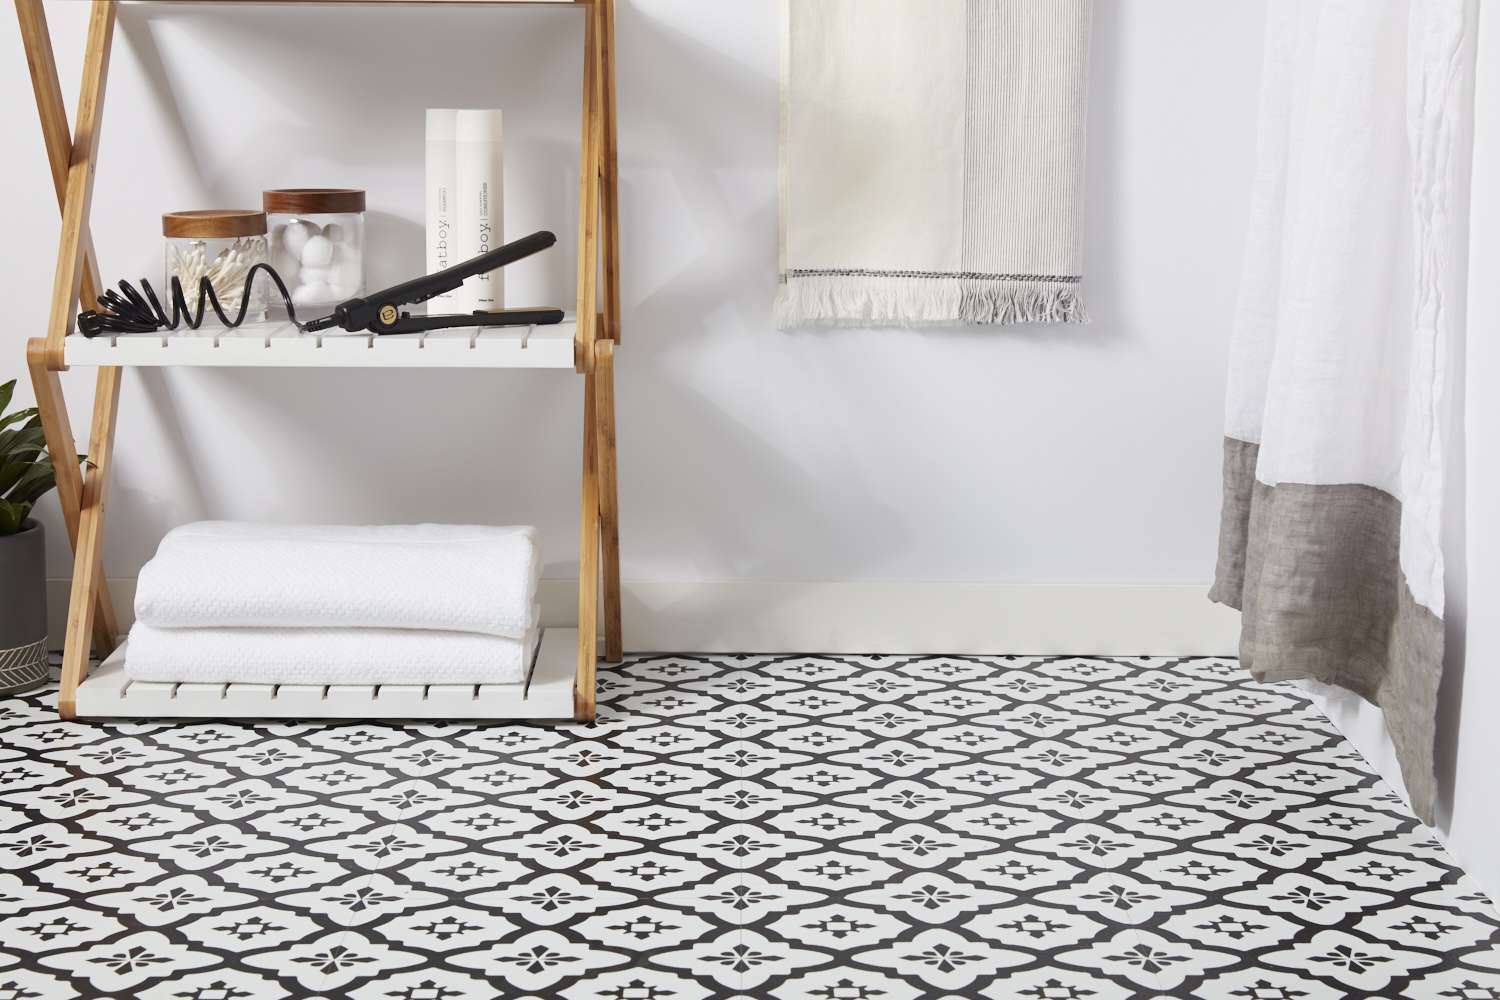 Vinyl tile flooring with wooden stand and bathroom items above folded white towels